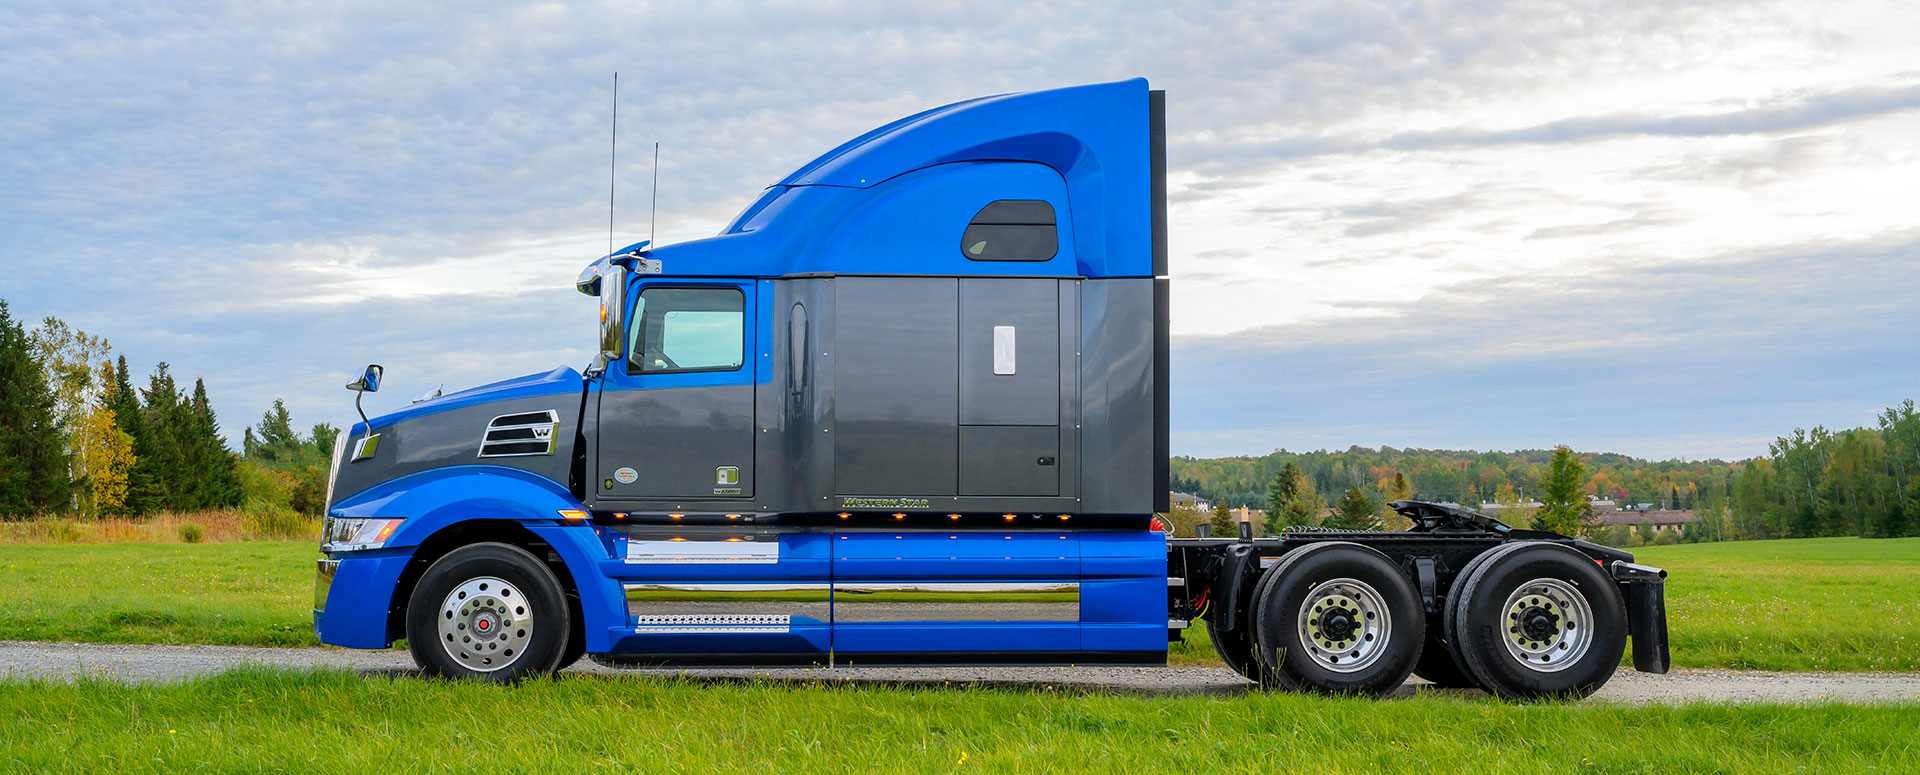 5700XE for sale - truck for sale